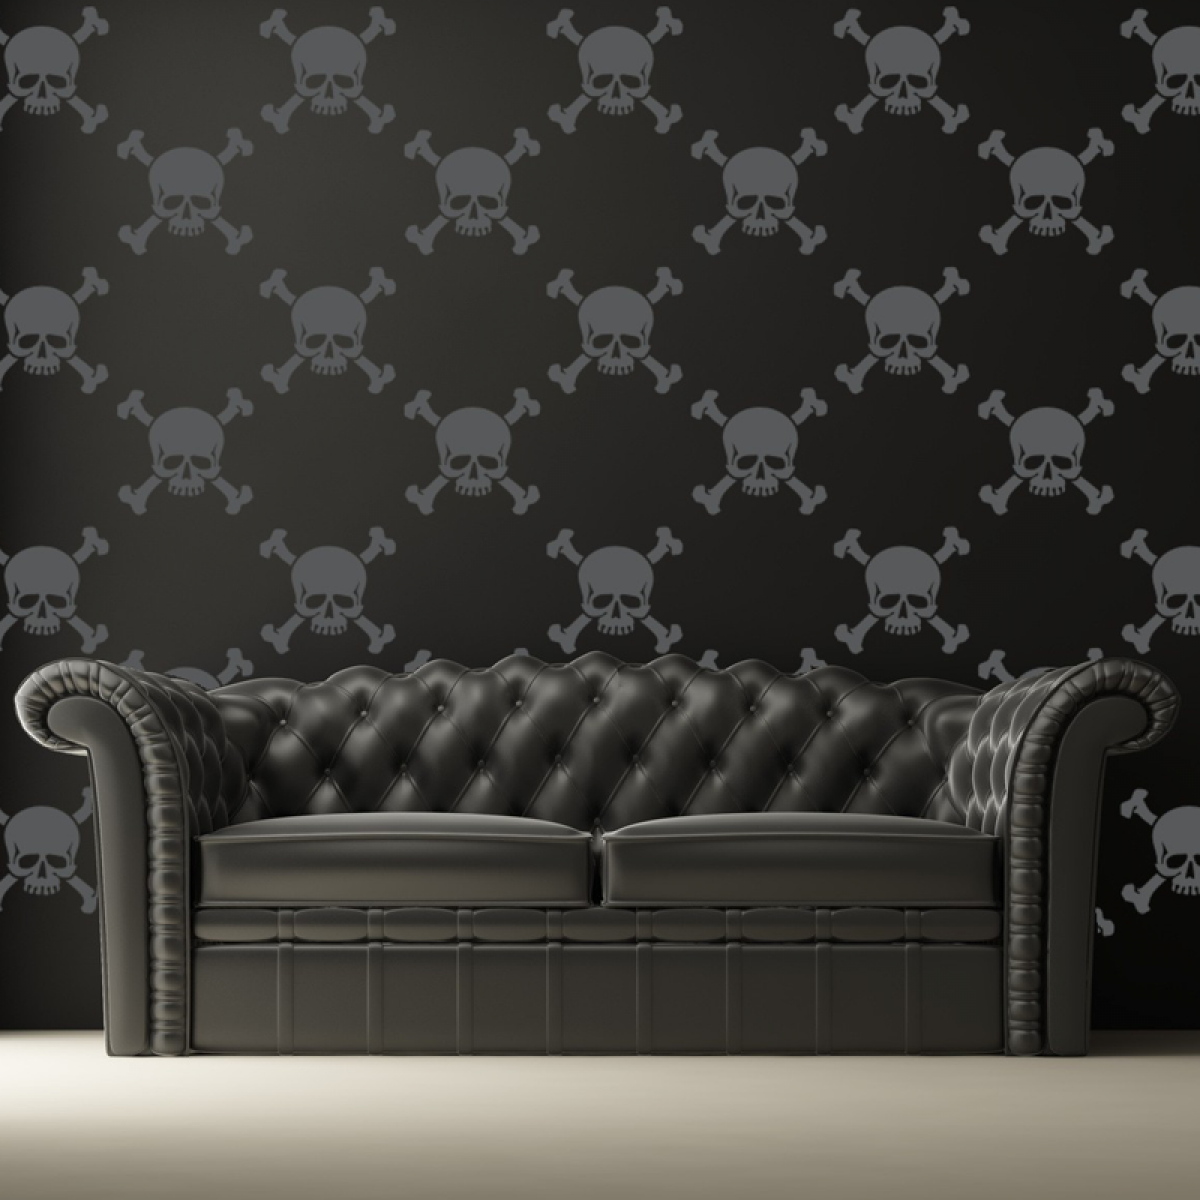 Skull Wallpaper For Walls Skull and crossbones wall 1200x1200